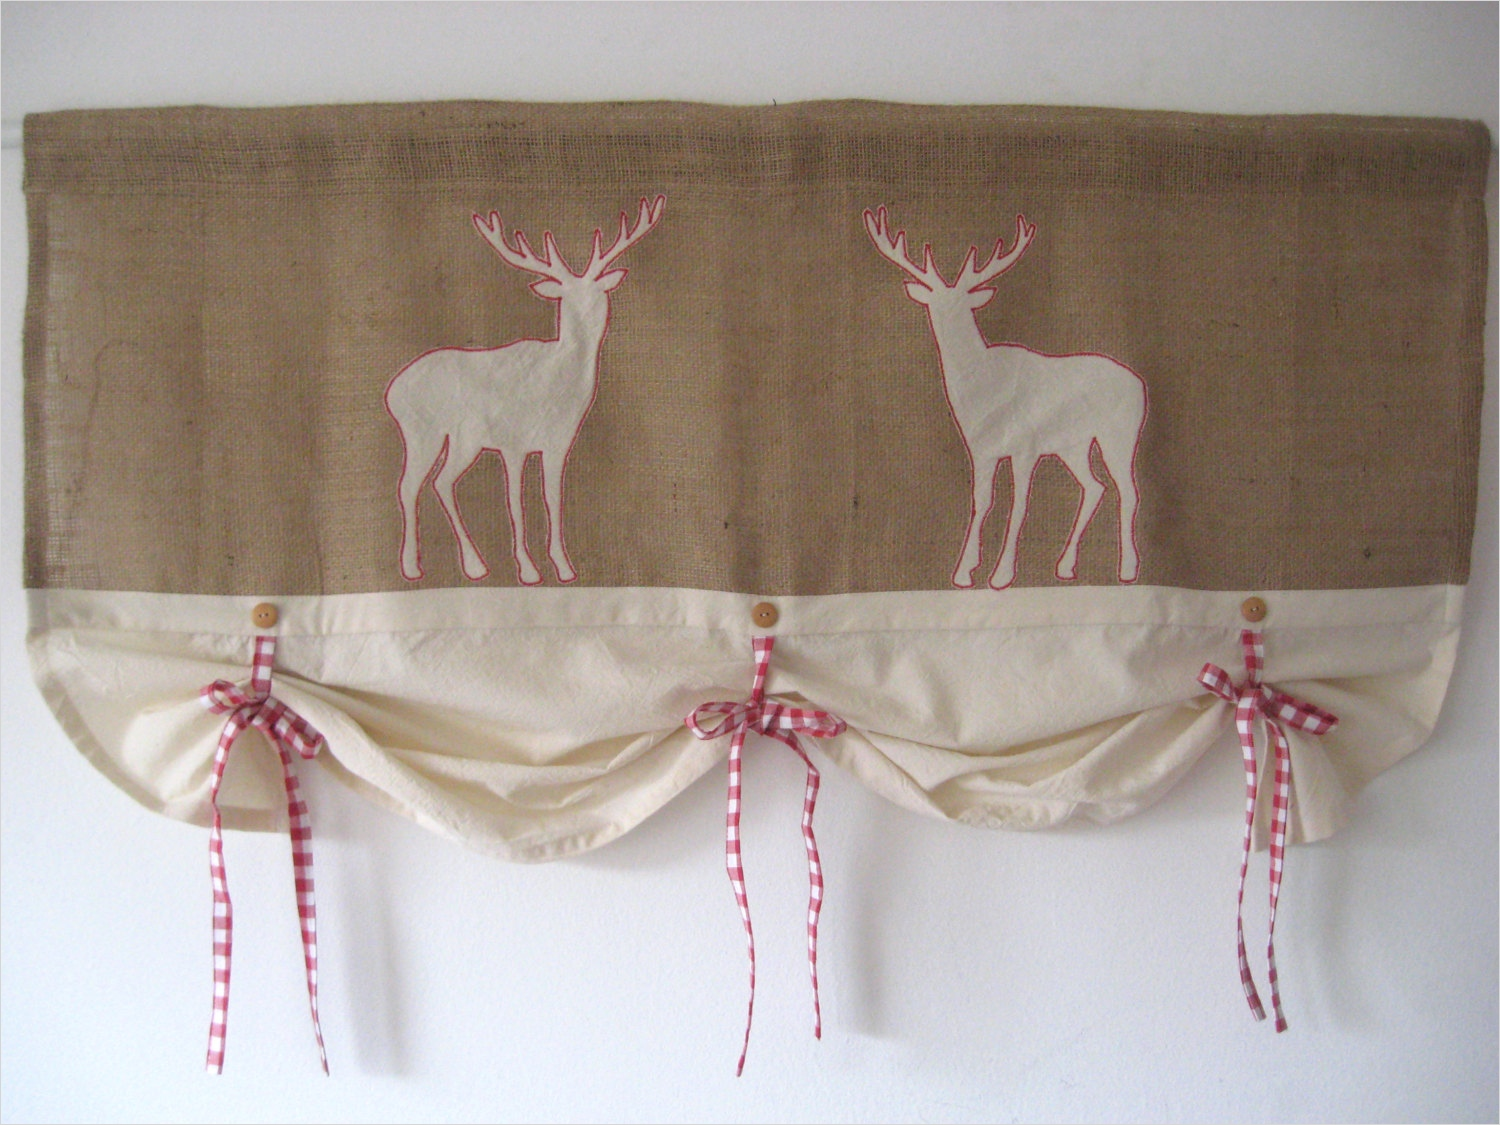 41 Perfect Farmhouse Country Kitchen Curtain Valances 62 Rustic Burlap Farmhouse Curtains Red Gingham Tie Up Valance 1